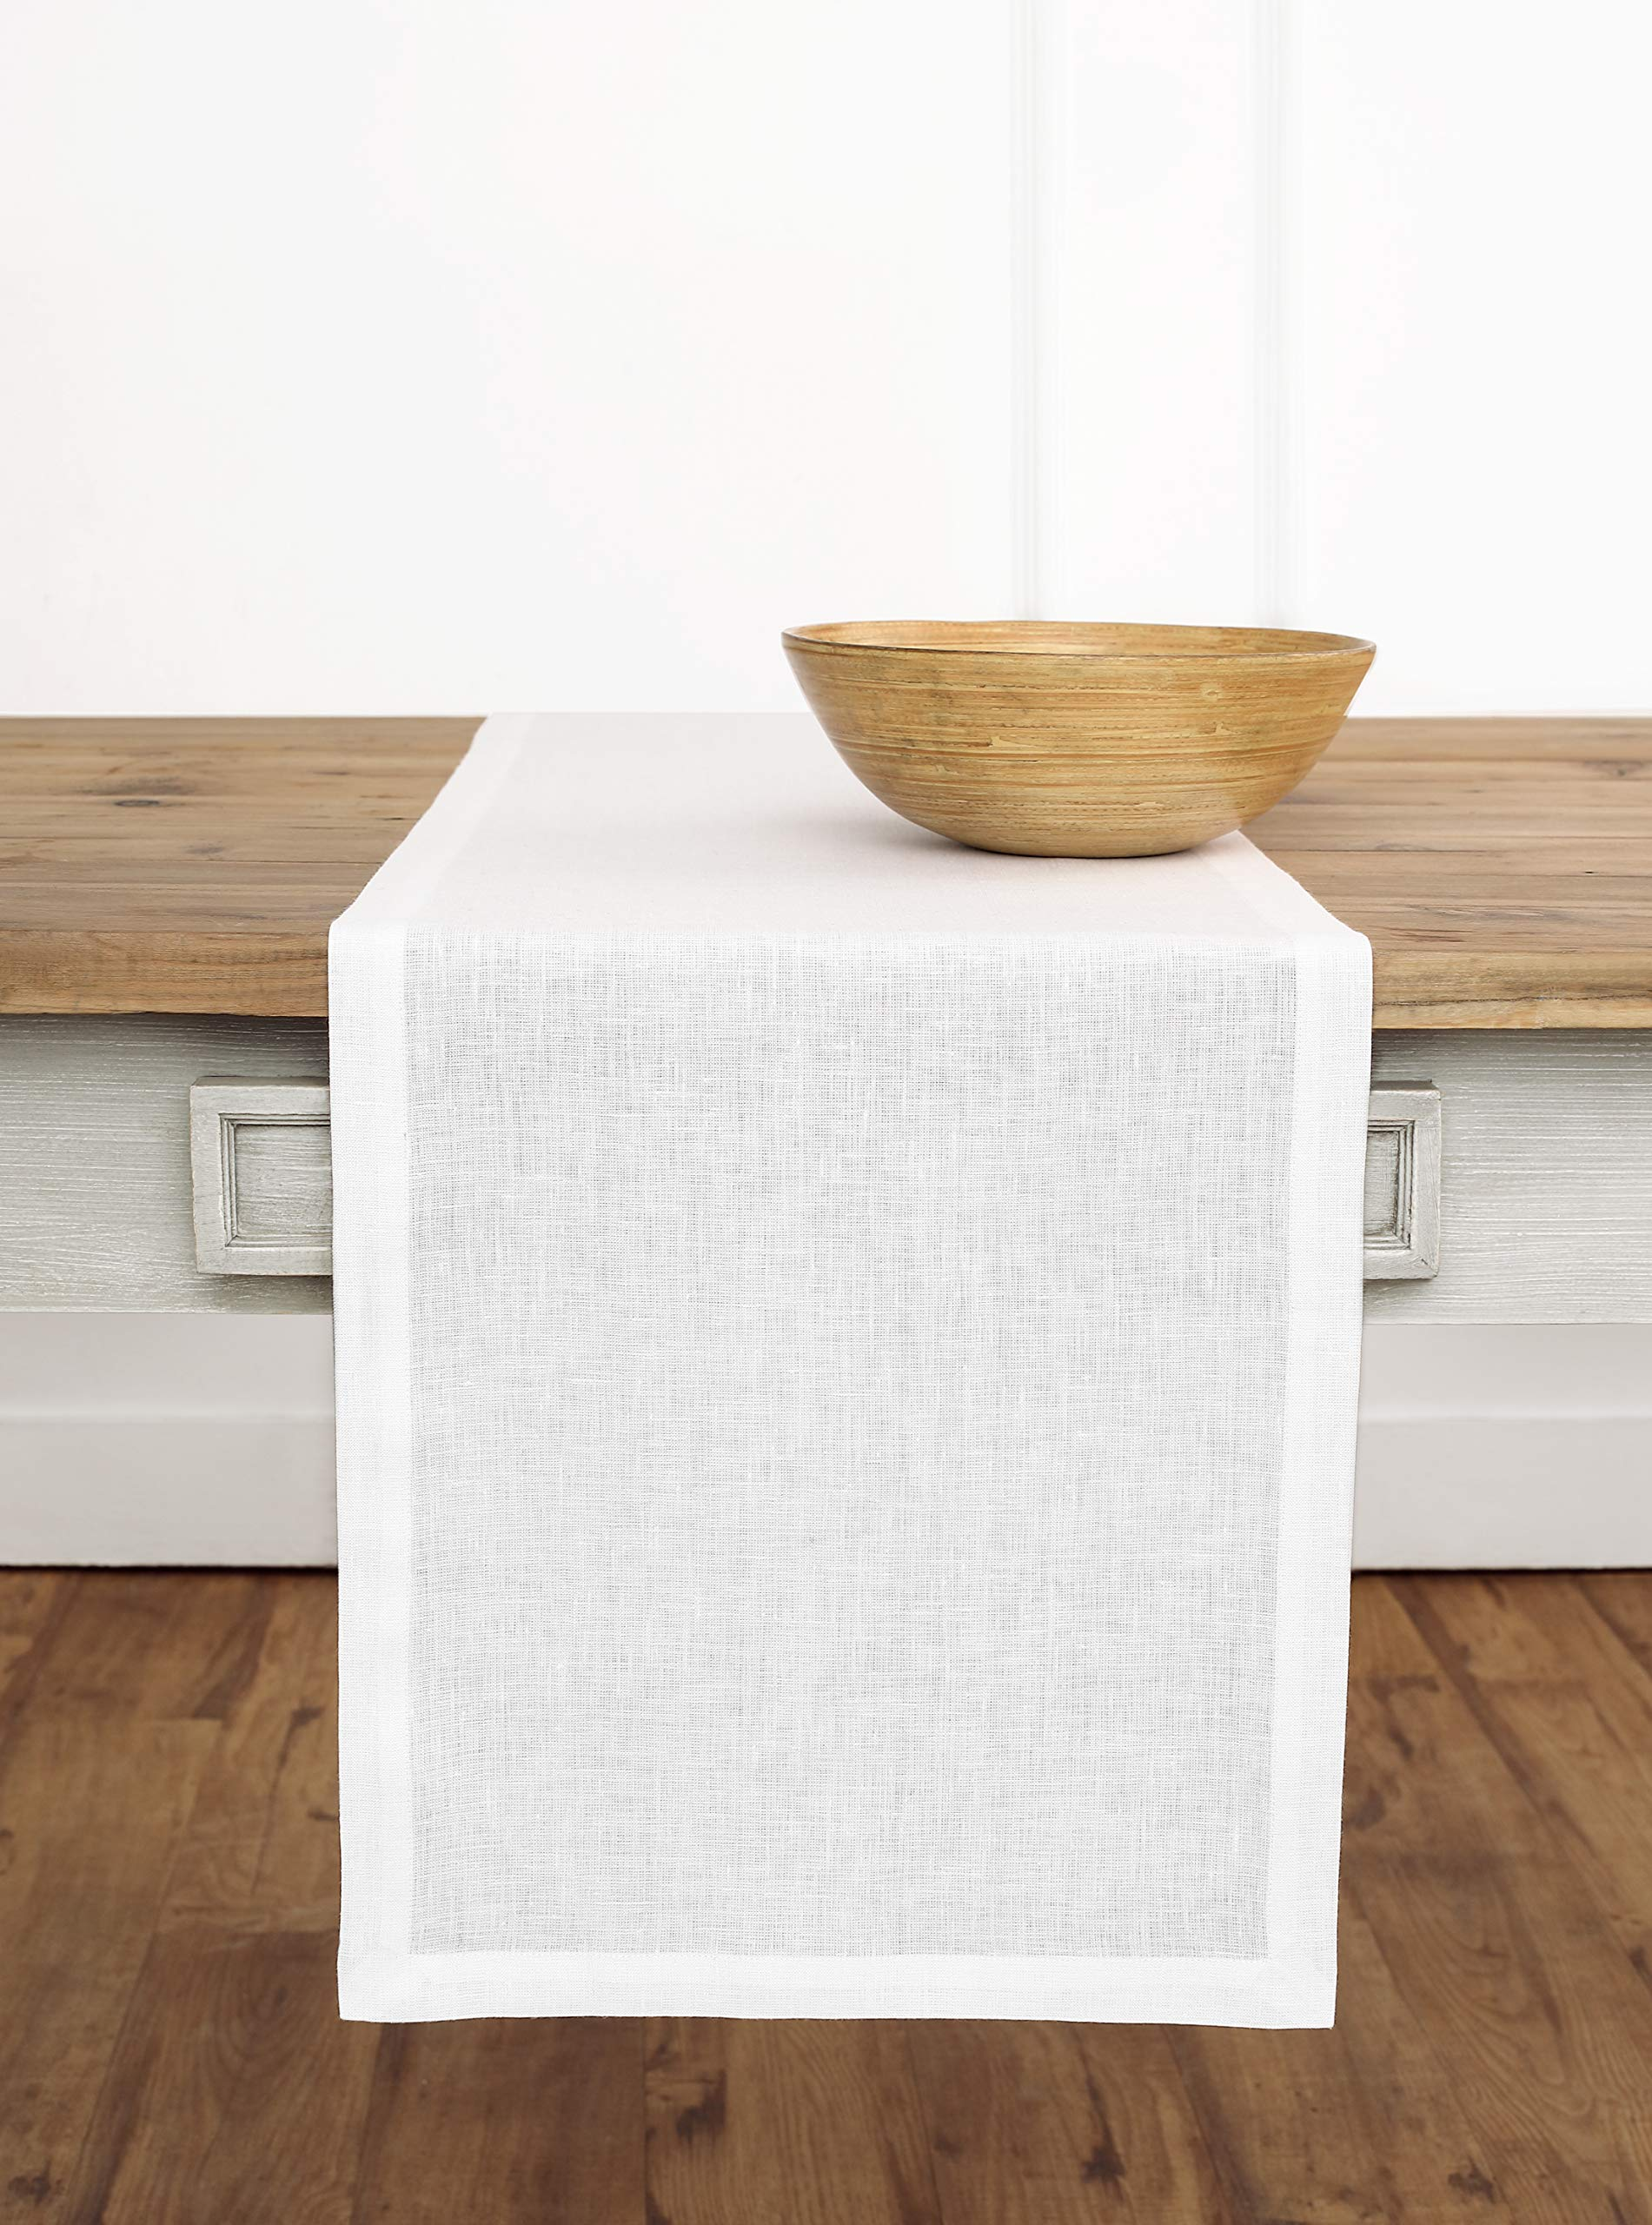 Solino Home Linen Table Runner - 14 x 48 Inch, Crafted from 100% Pure European Flax - White, Athena